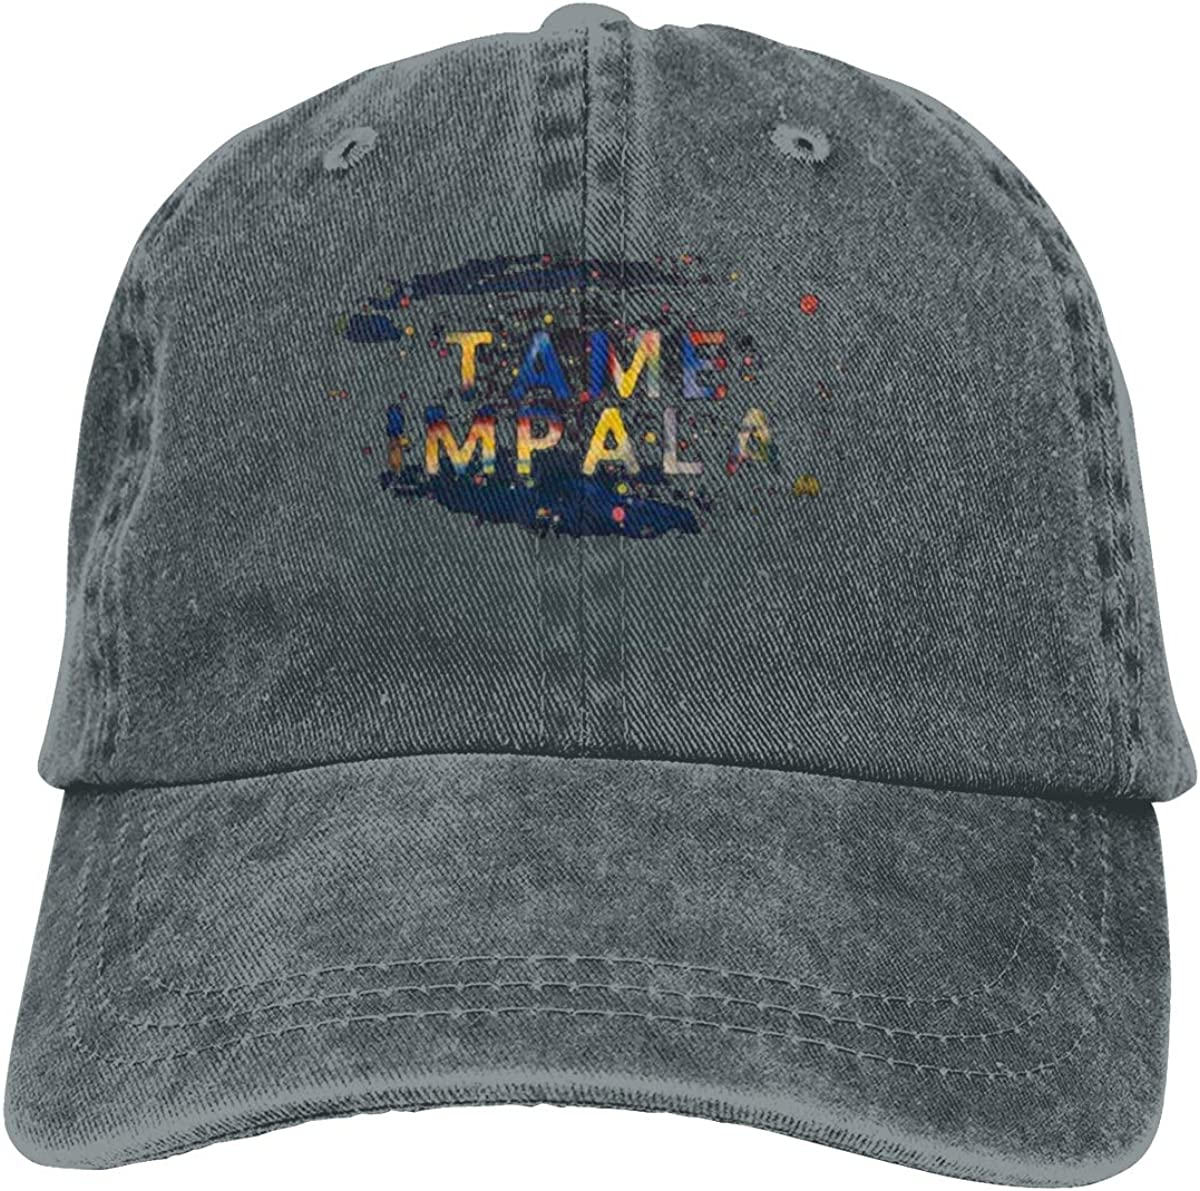 JERXANYD Tame Impala Adjustable Baseball Hat for Mens Caps